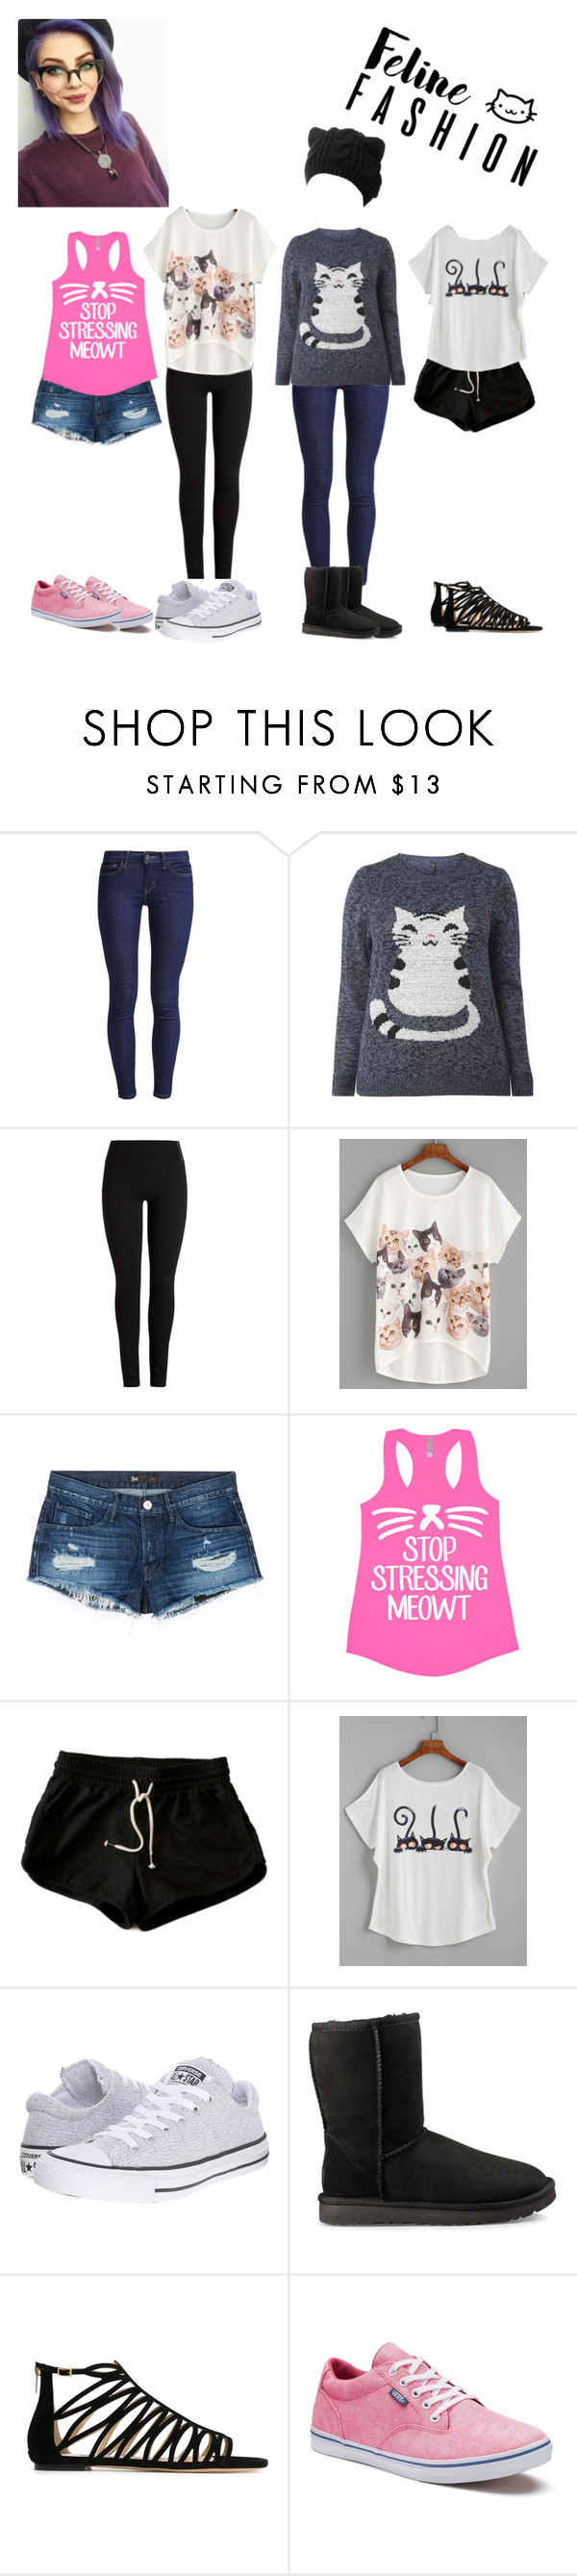 """Feline Fashion"" by pixiemon-meaka ❤ liked on Polyvore featuring Levi's, 3x1, Converse, UGG, Jimmy Choo and Vans"